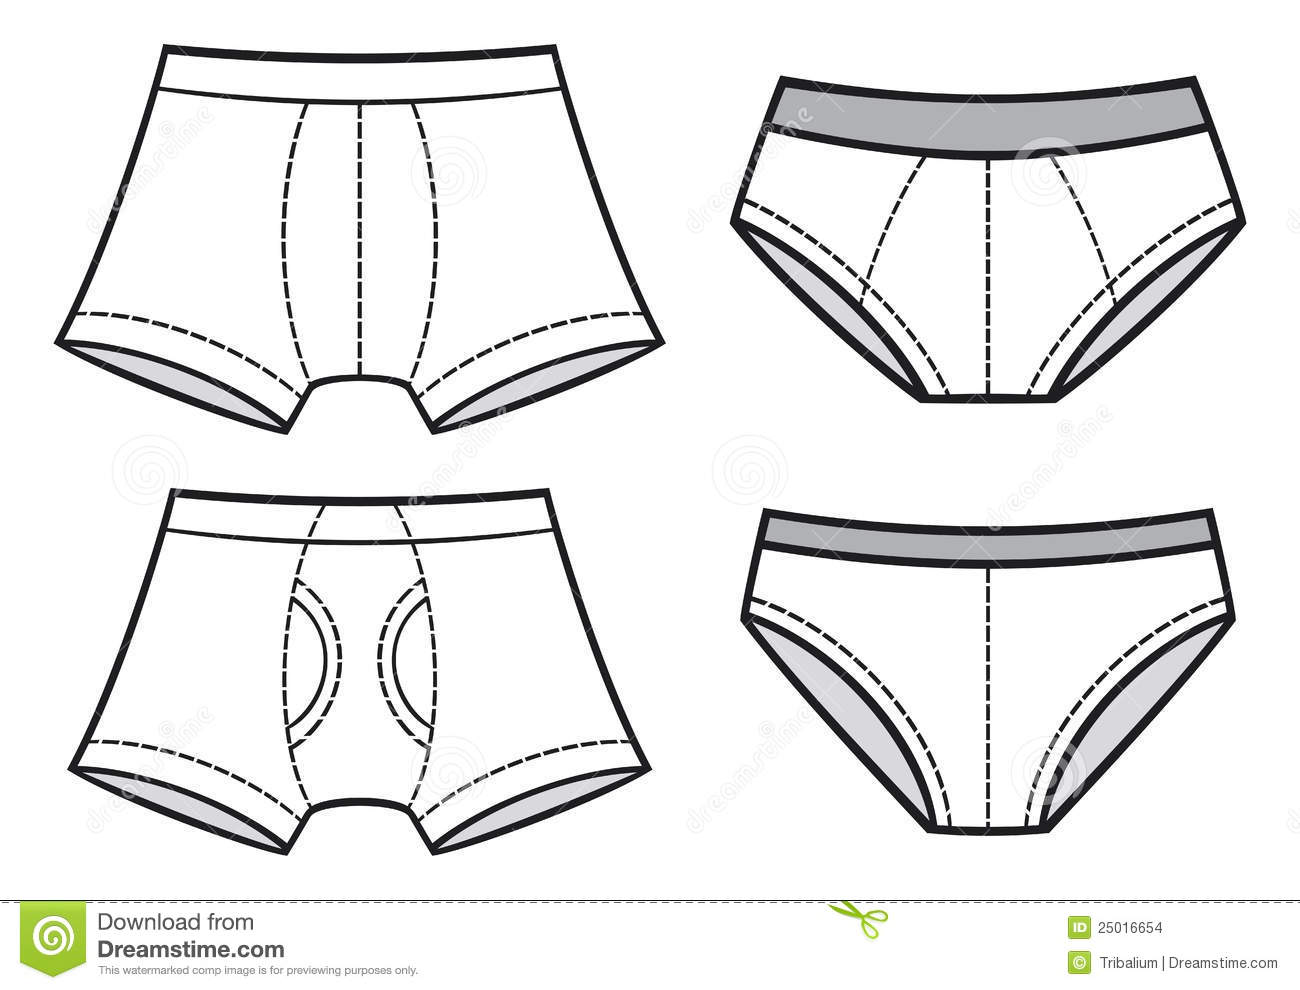 Underwear clipart black and white 5 » Clipart Station.